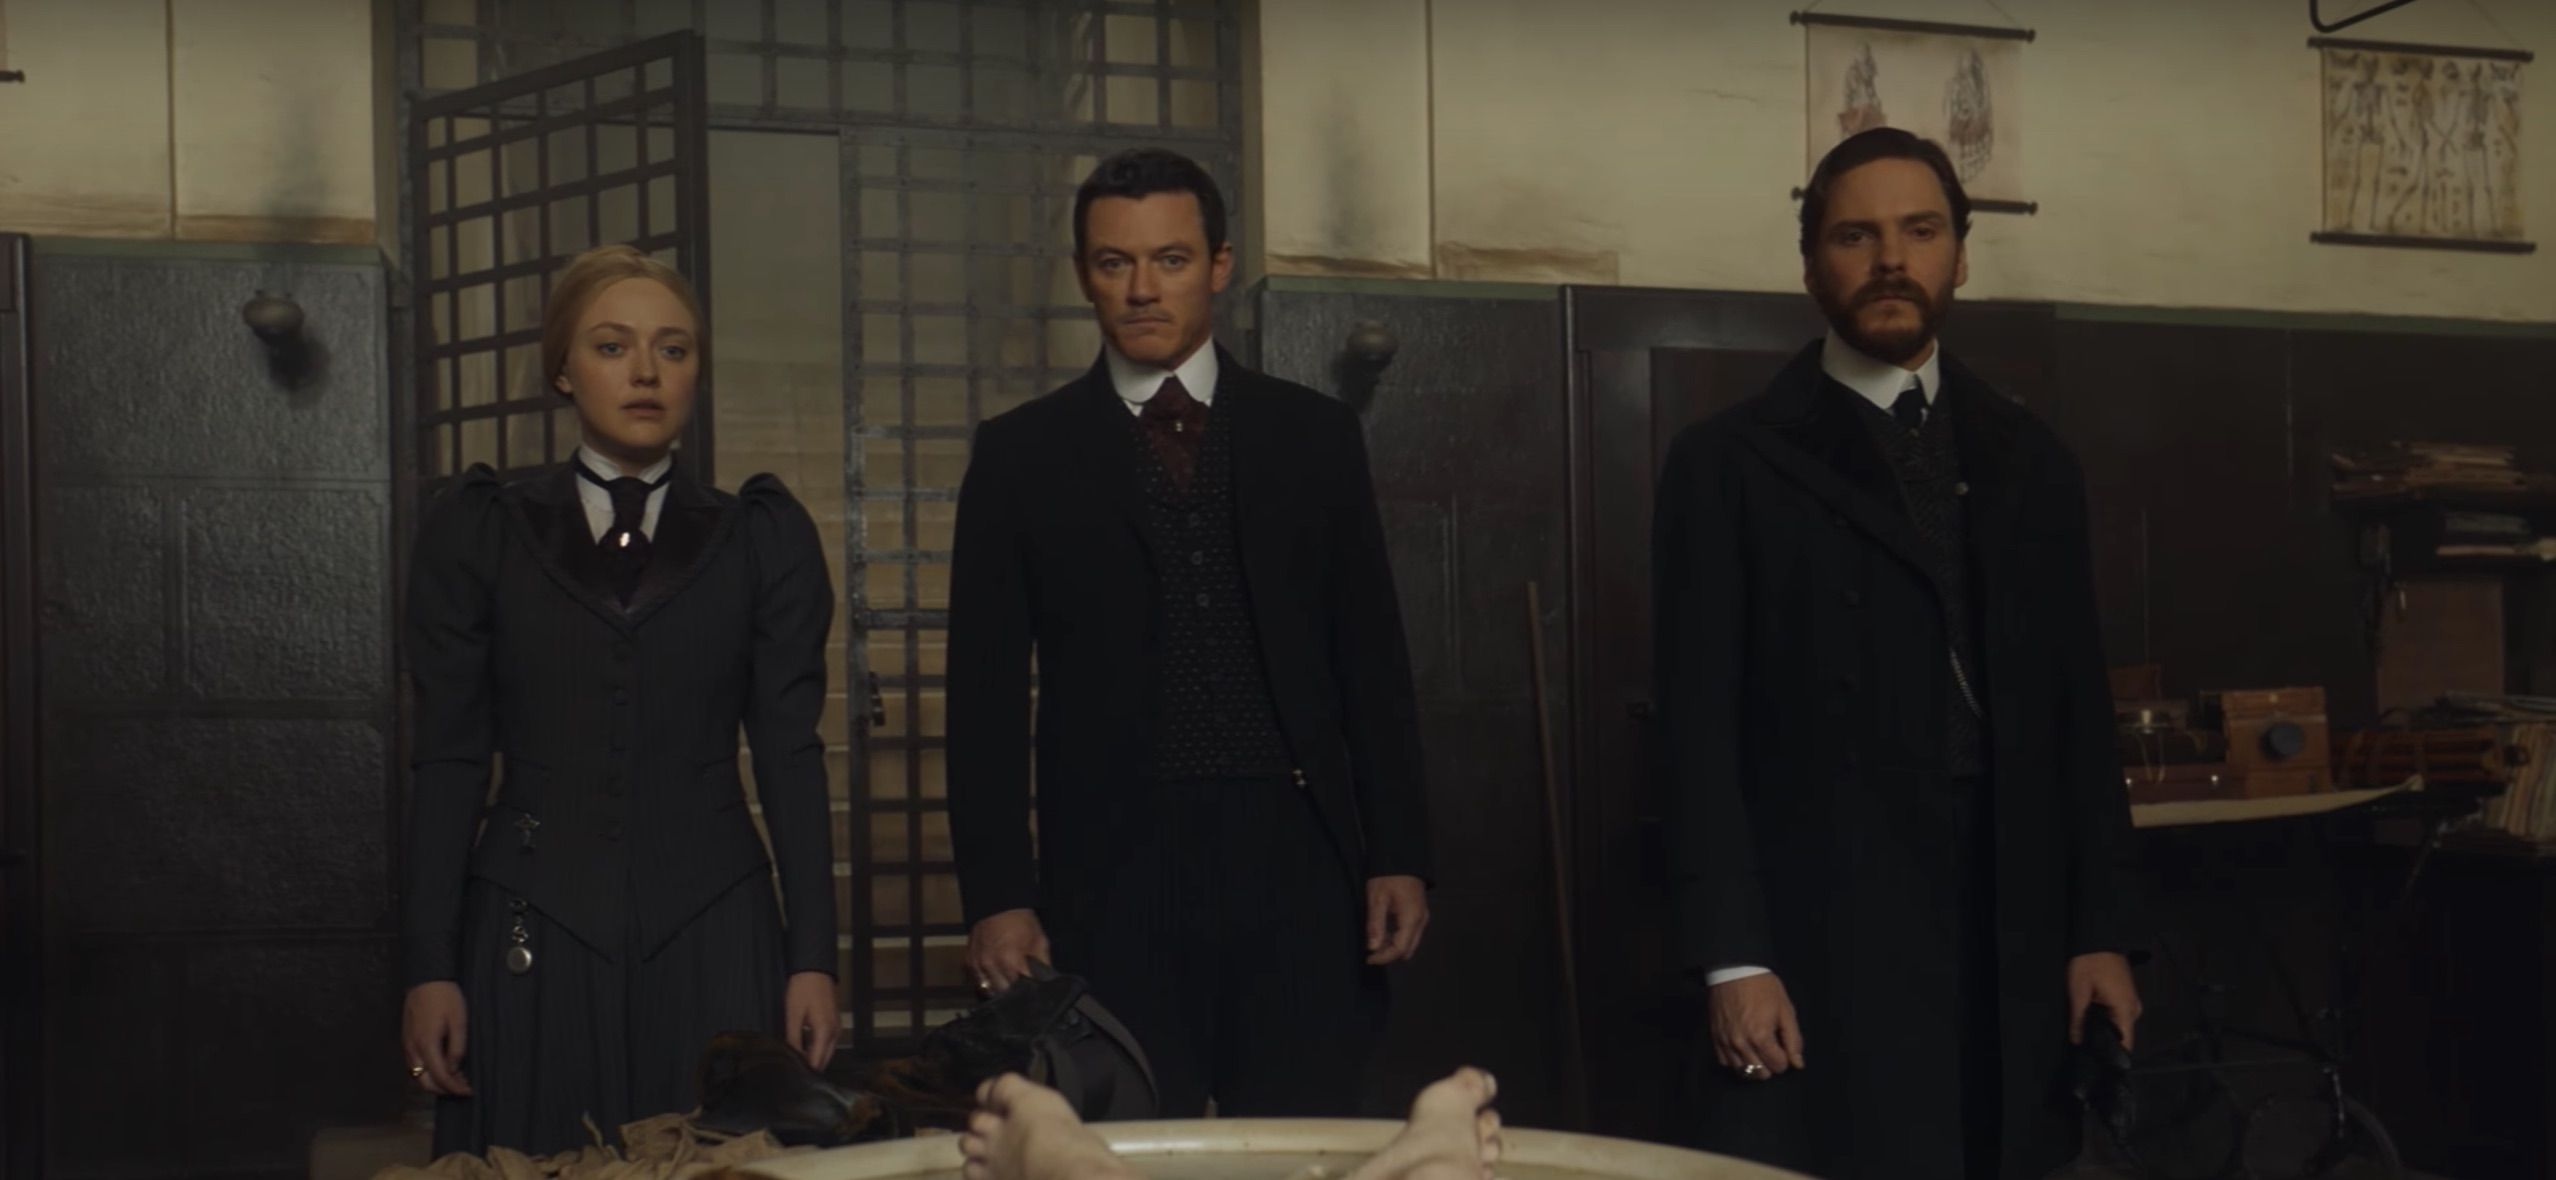 The Alienist season 2 release date cast, plot and everything